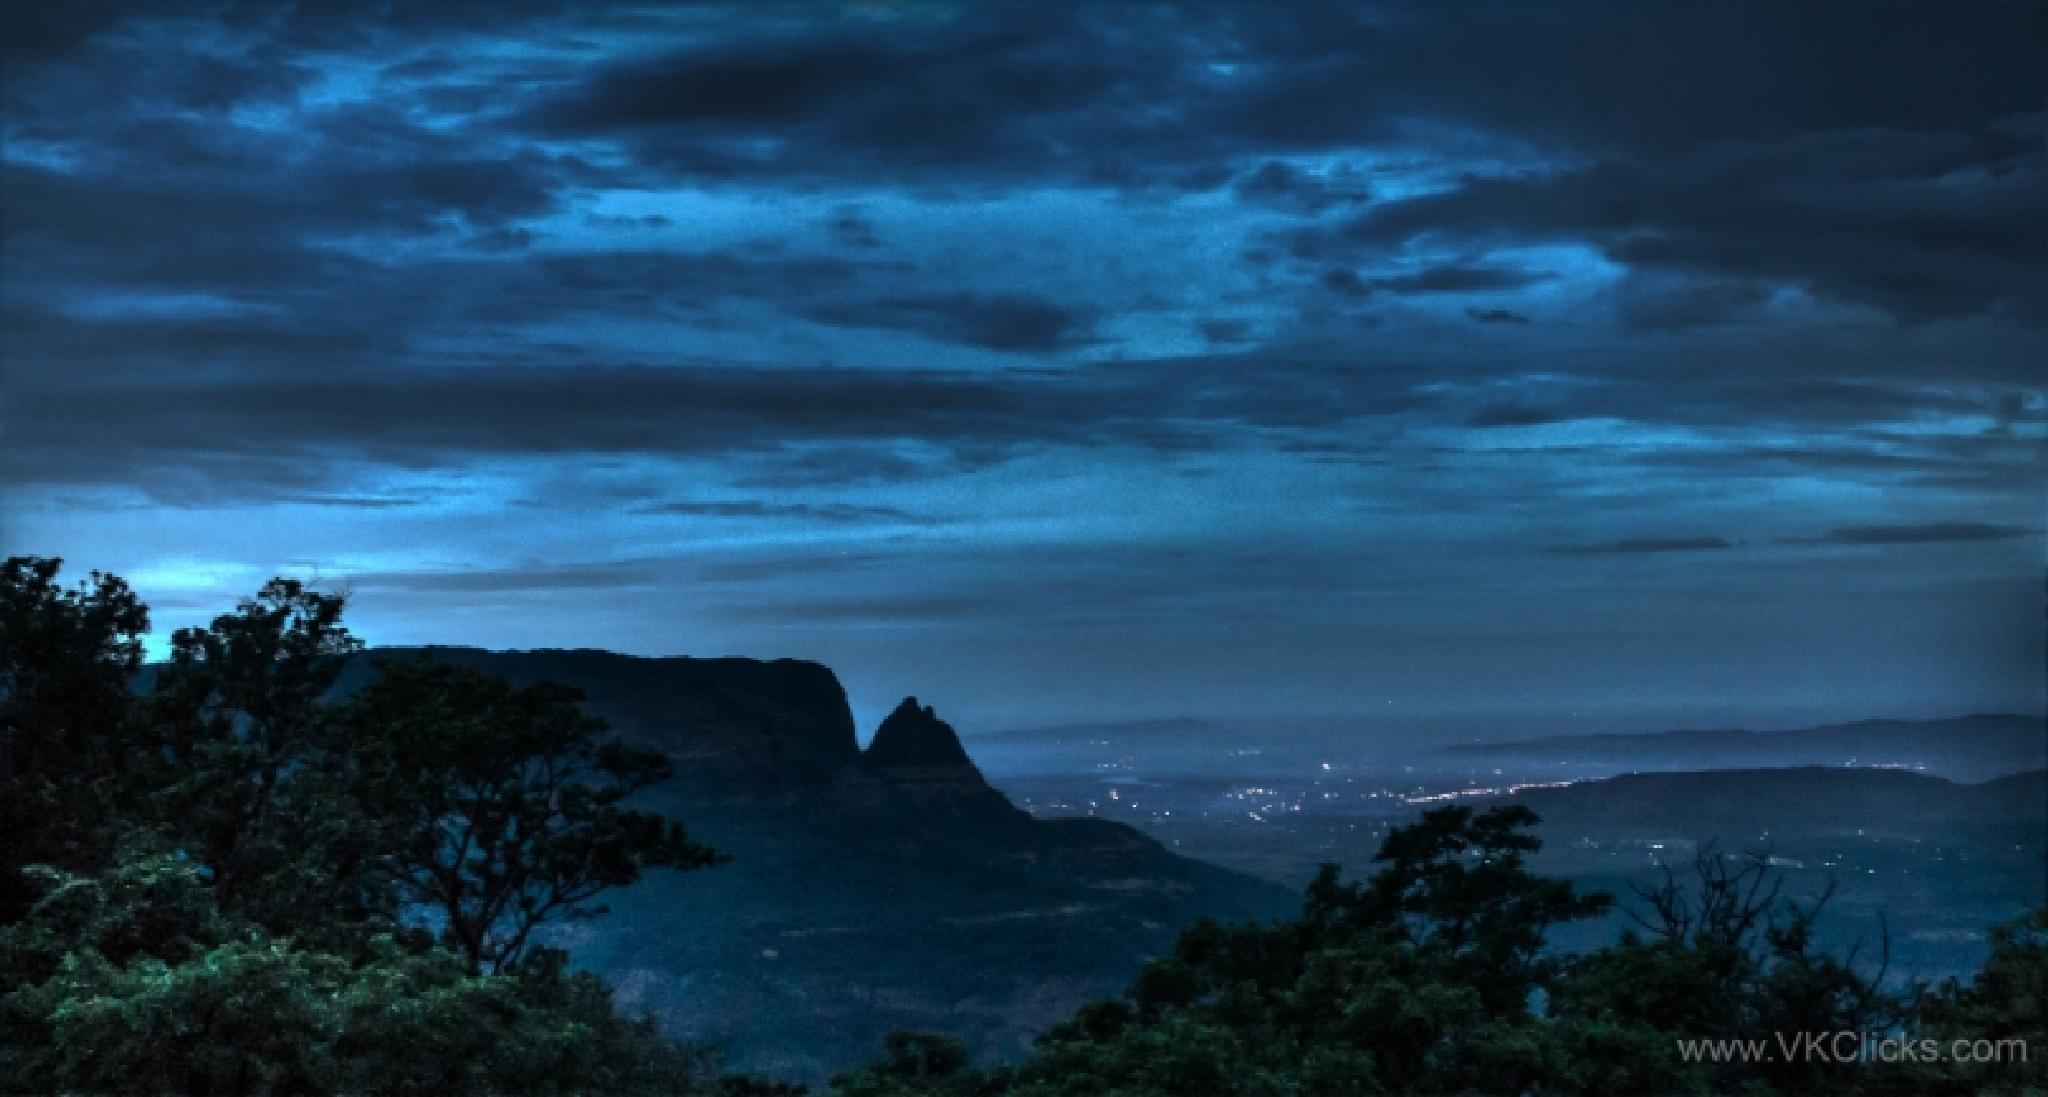 Night View by vkphotography5